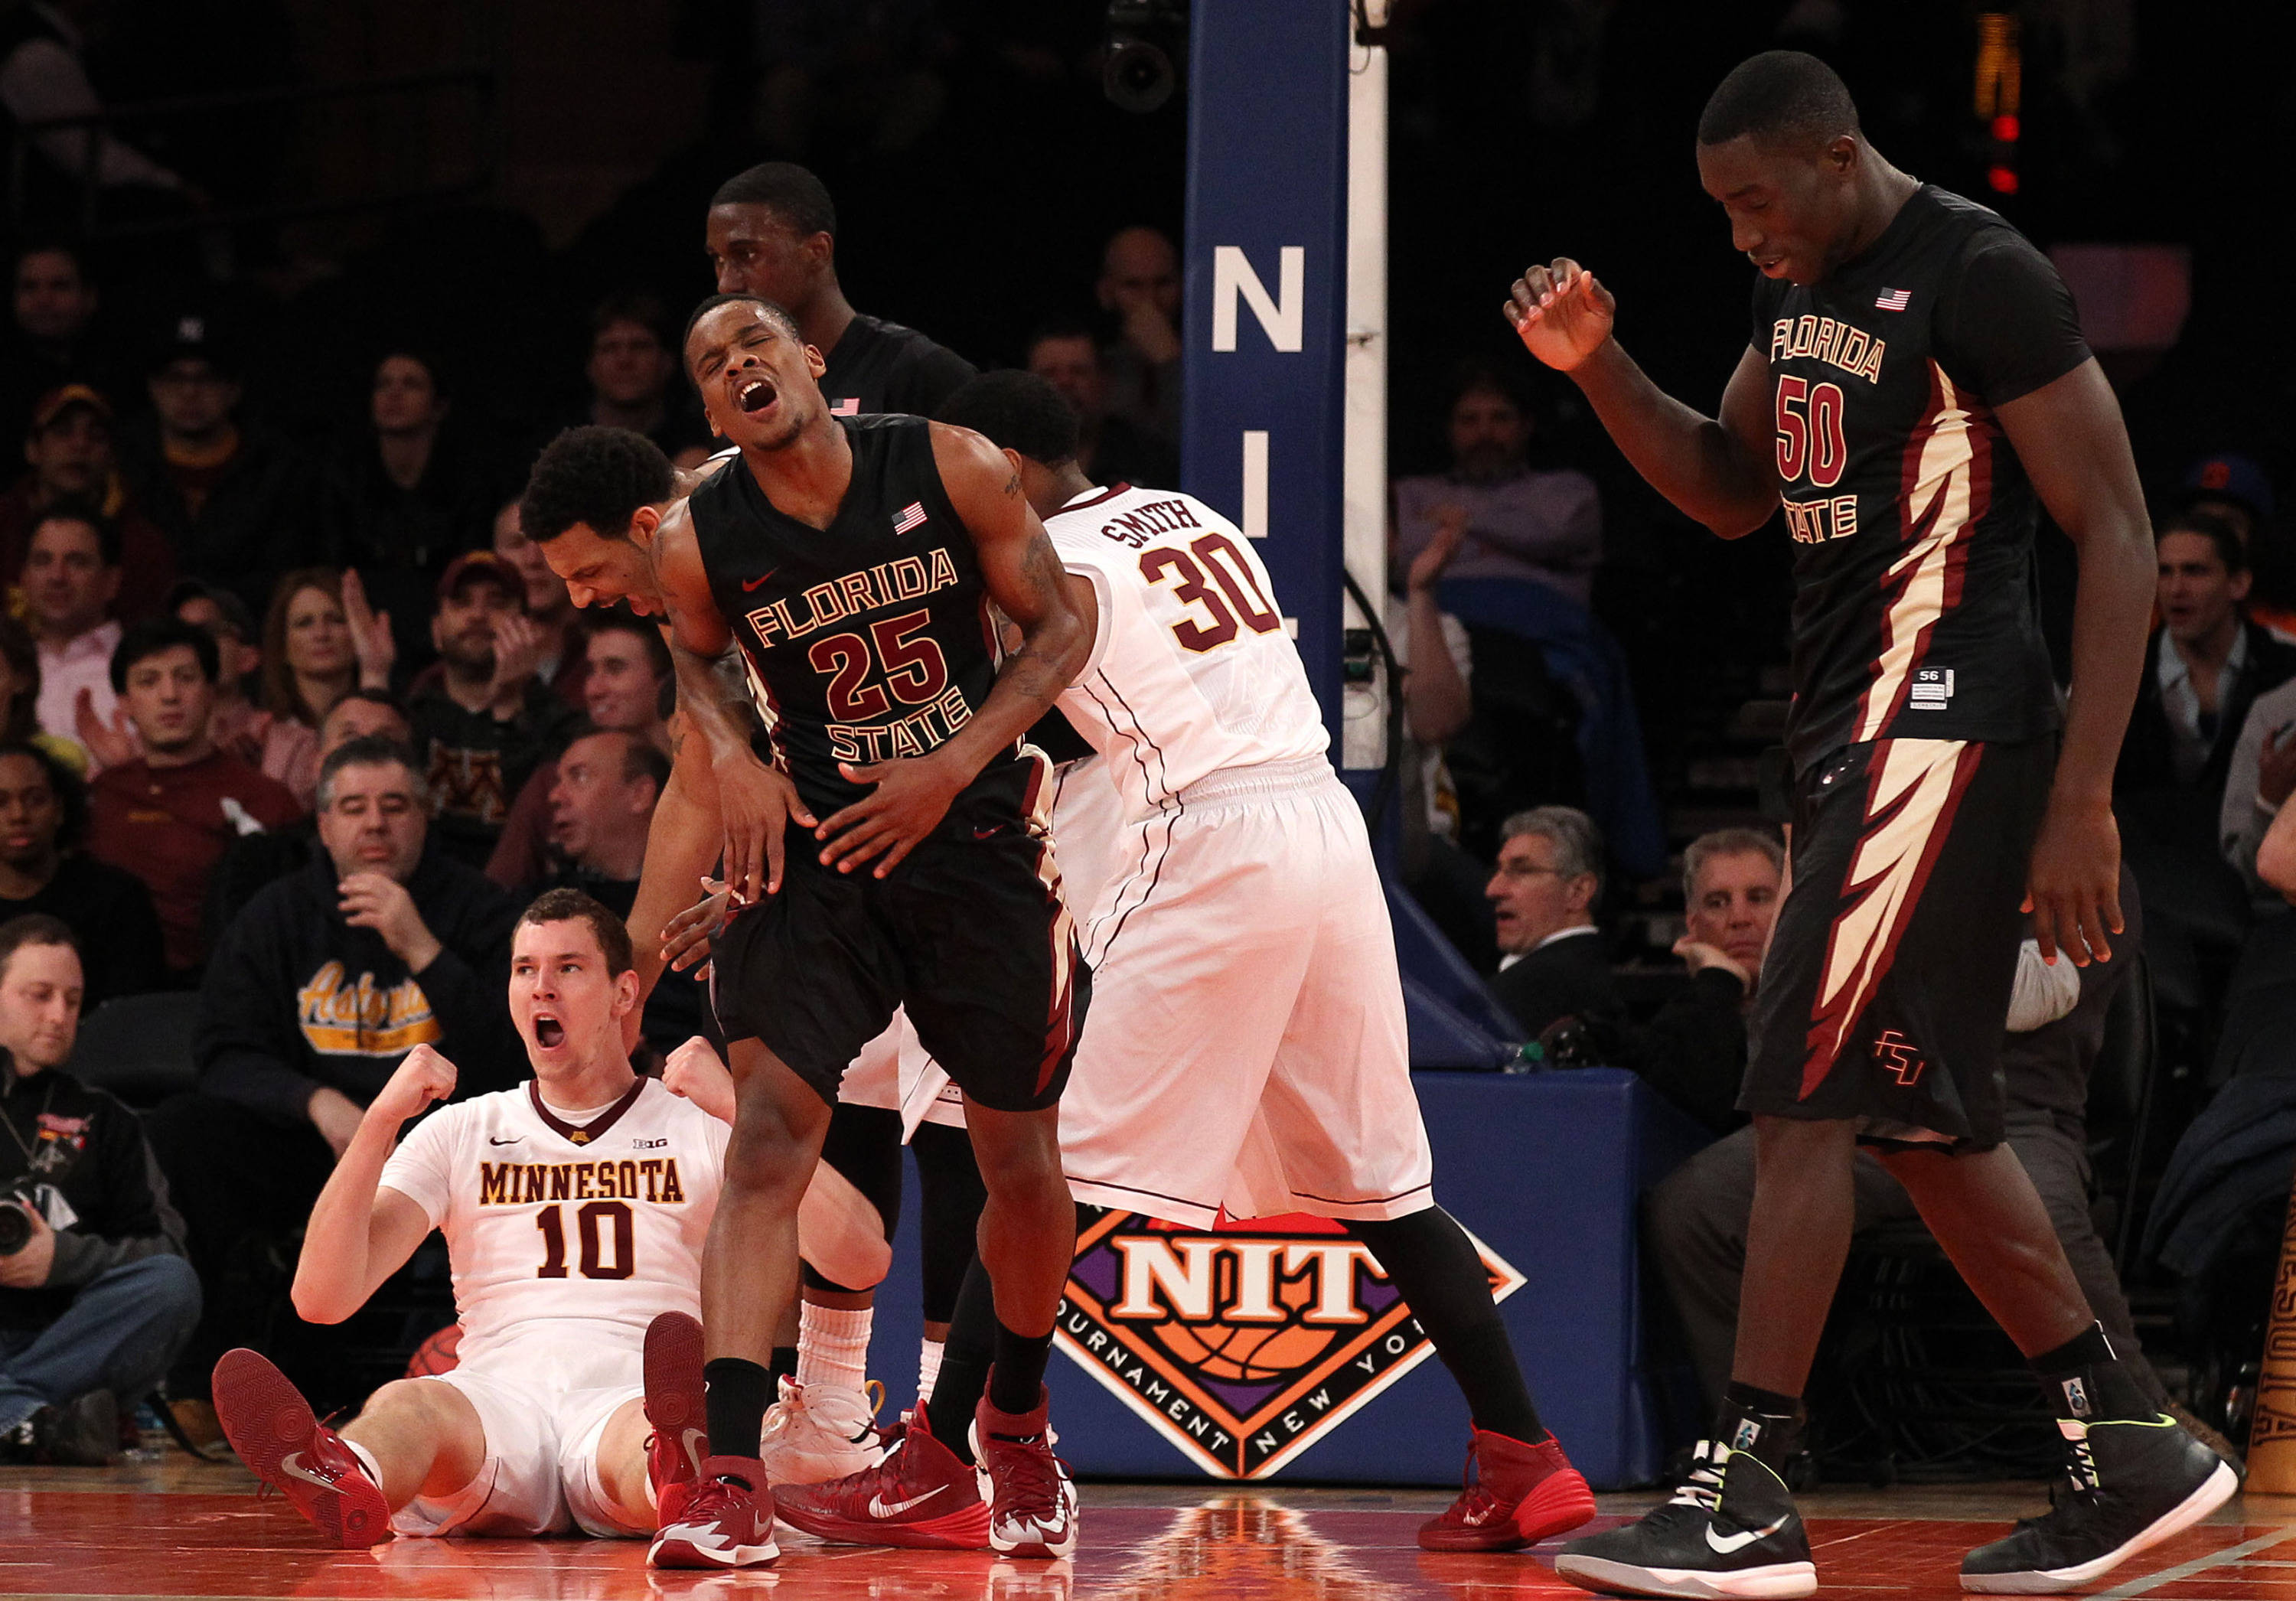 Apr 1, 2014; New York, NY, USA; Florida State Seminoles guard Aaron Thomas (25) reacts to being called for a foul on Minnesota Golden Gophers forward Oto Osenieks (10) during the first half at Madison Square Garden. Mandatory Credit: Adam Hunger-USA TODAY Sports